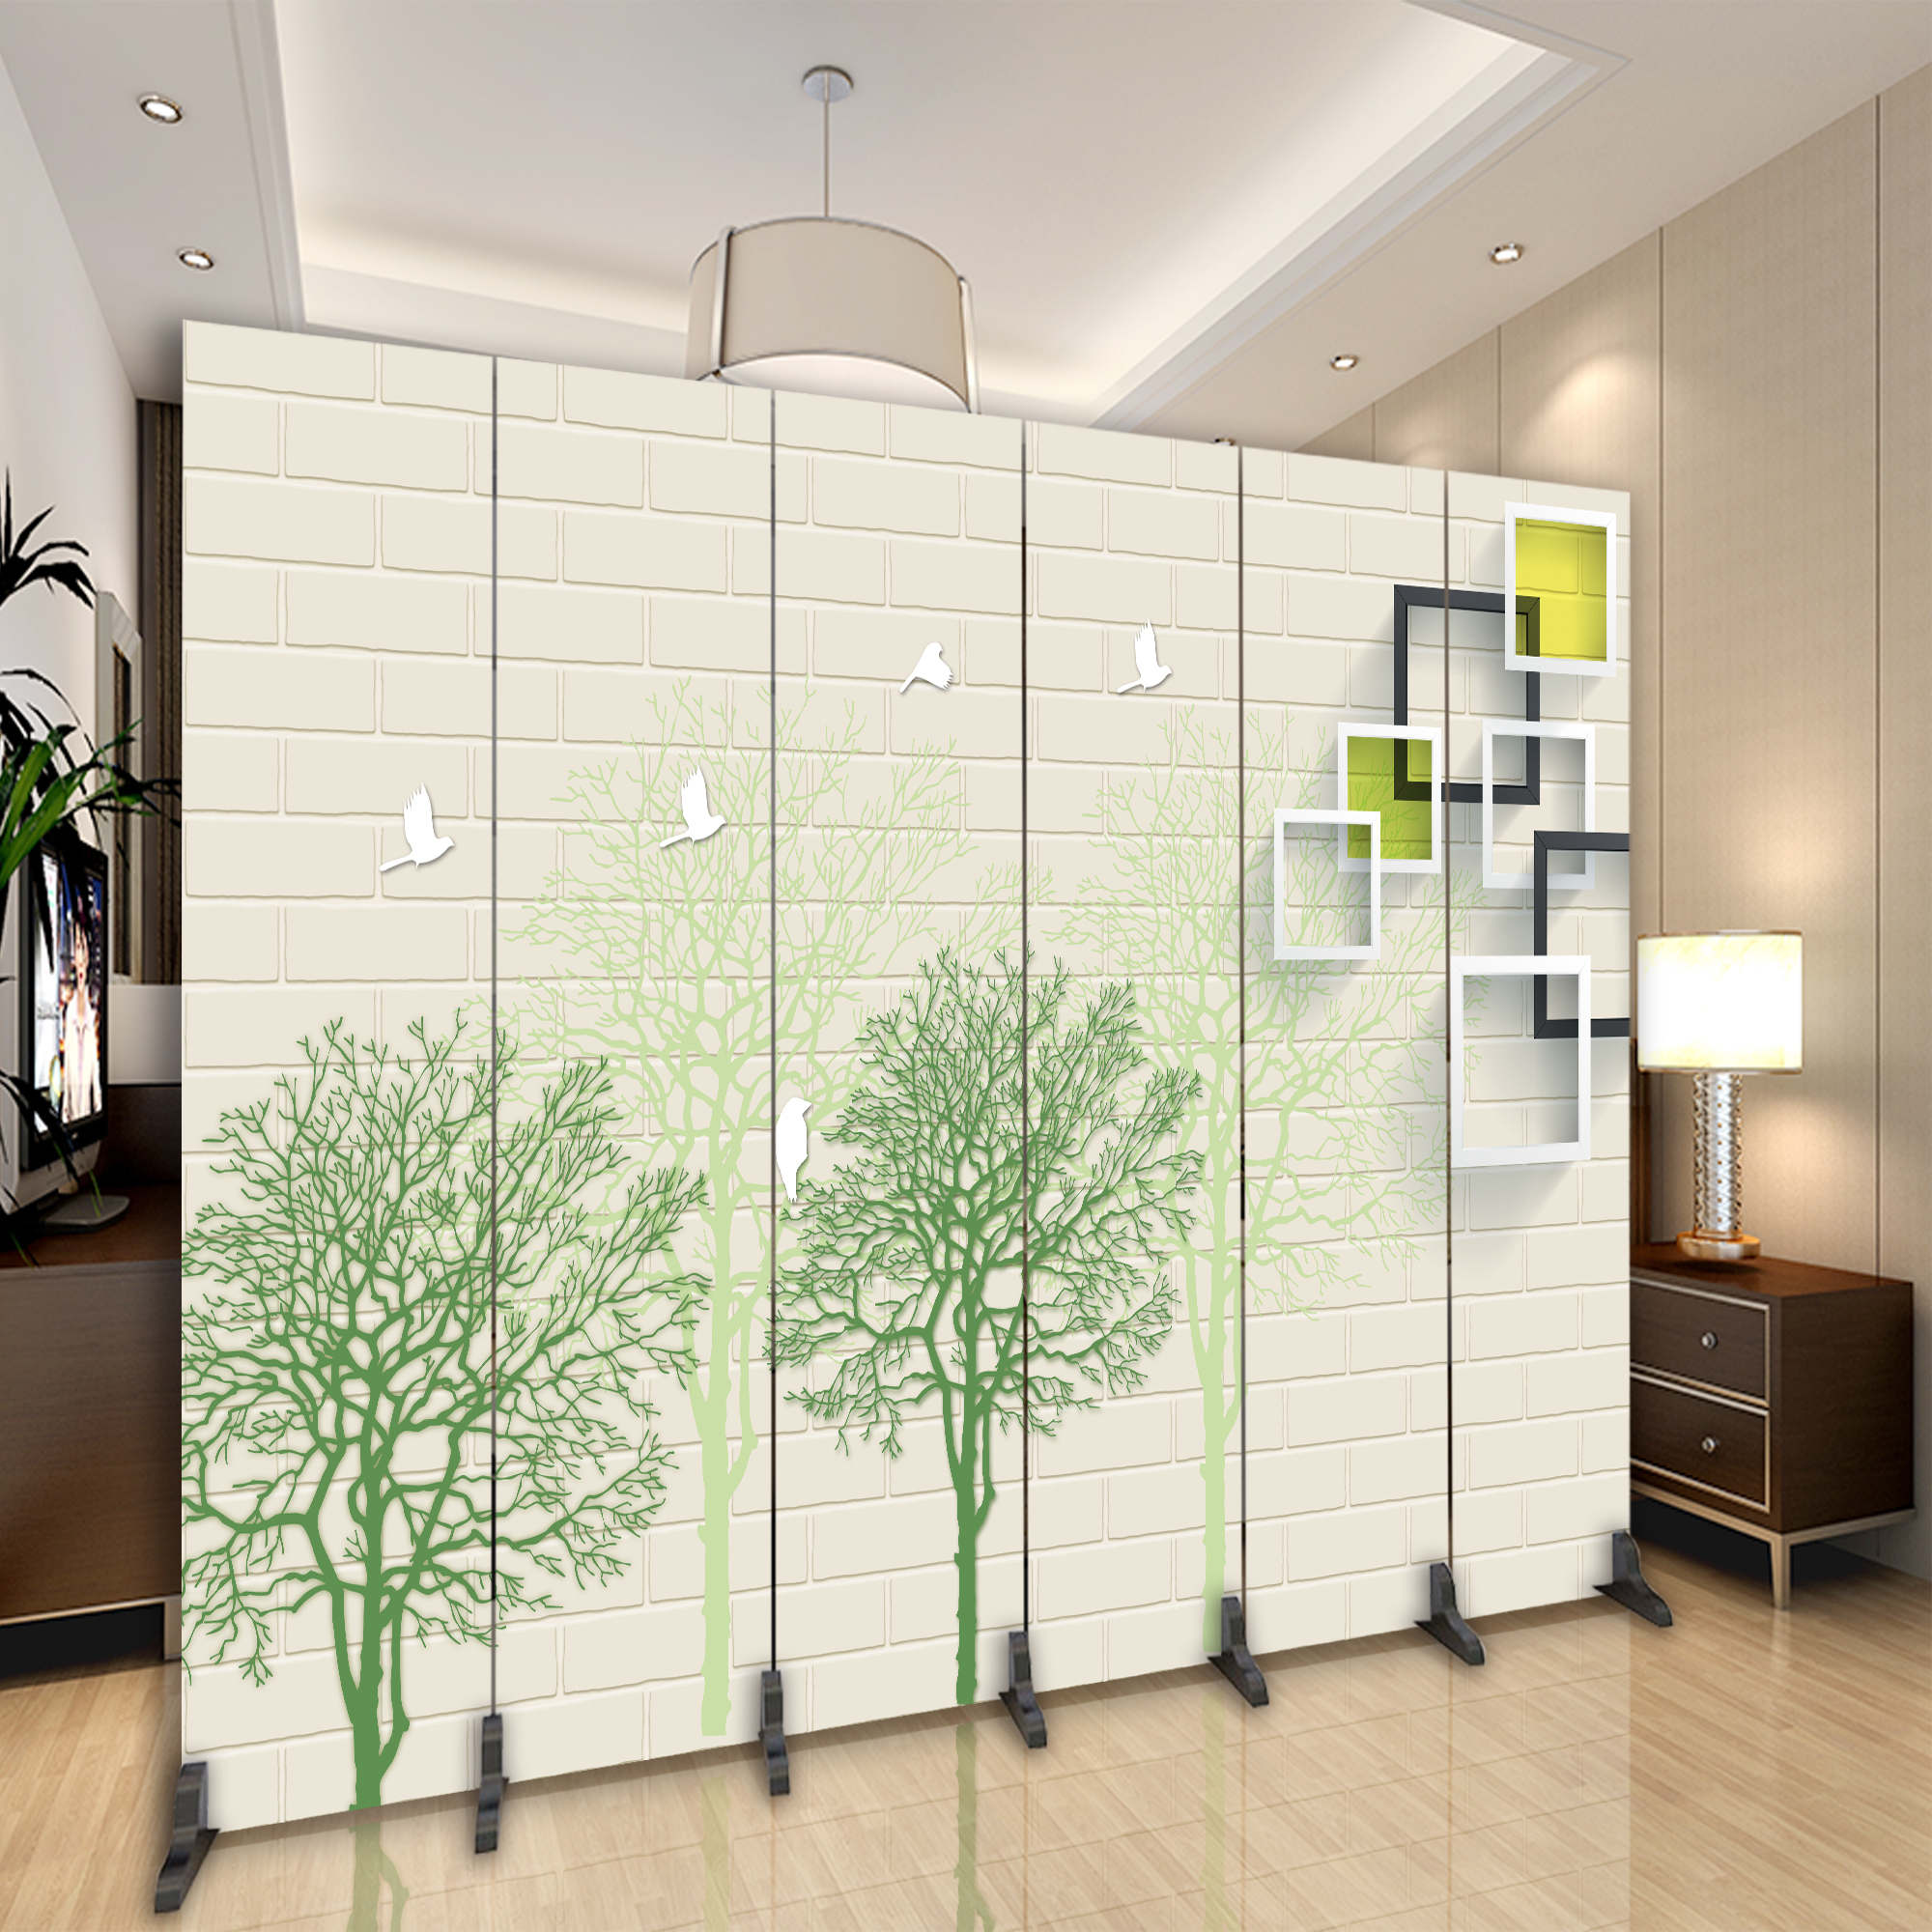 Screens-partitions for the room: types and purpose 6